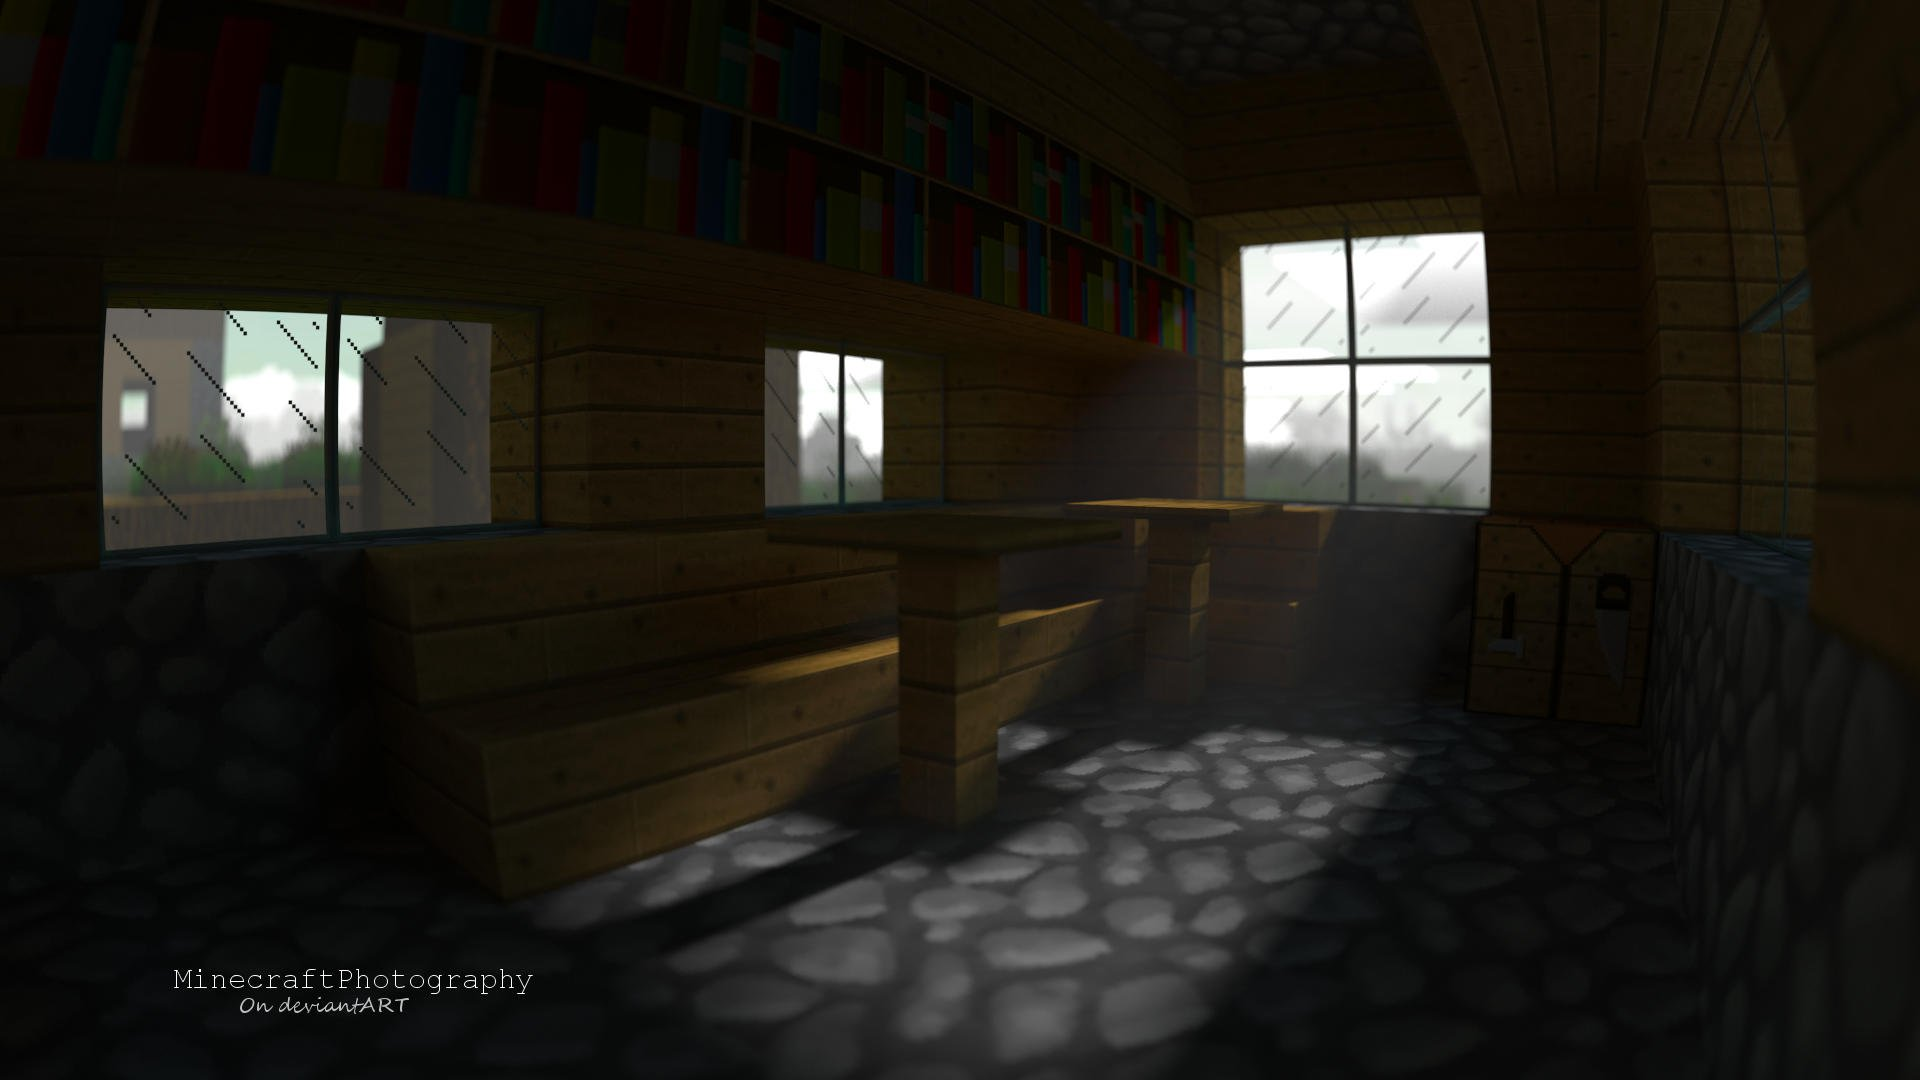 Village Room Minecraft Render and Wallpaper by MinecraftPhotography 1920x1080